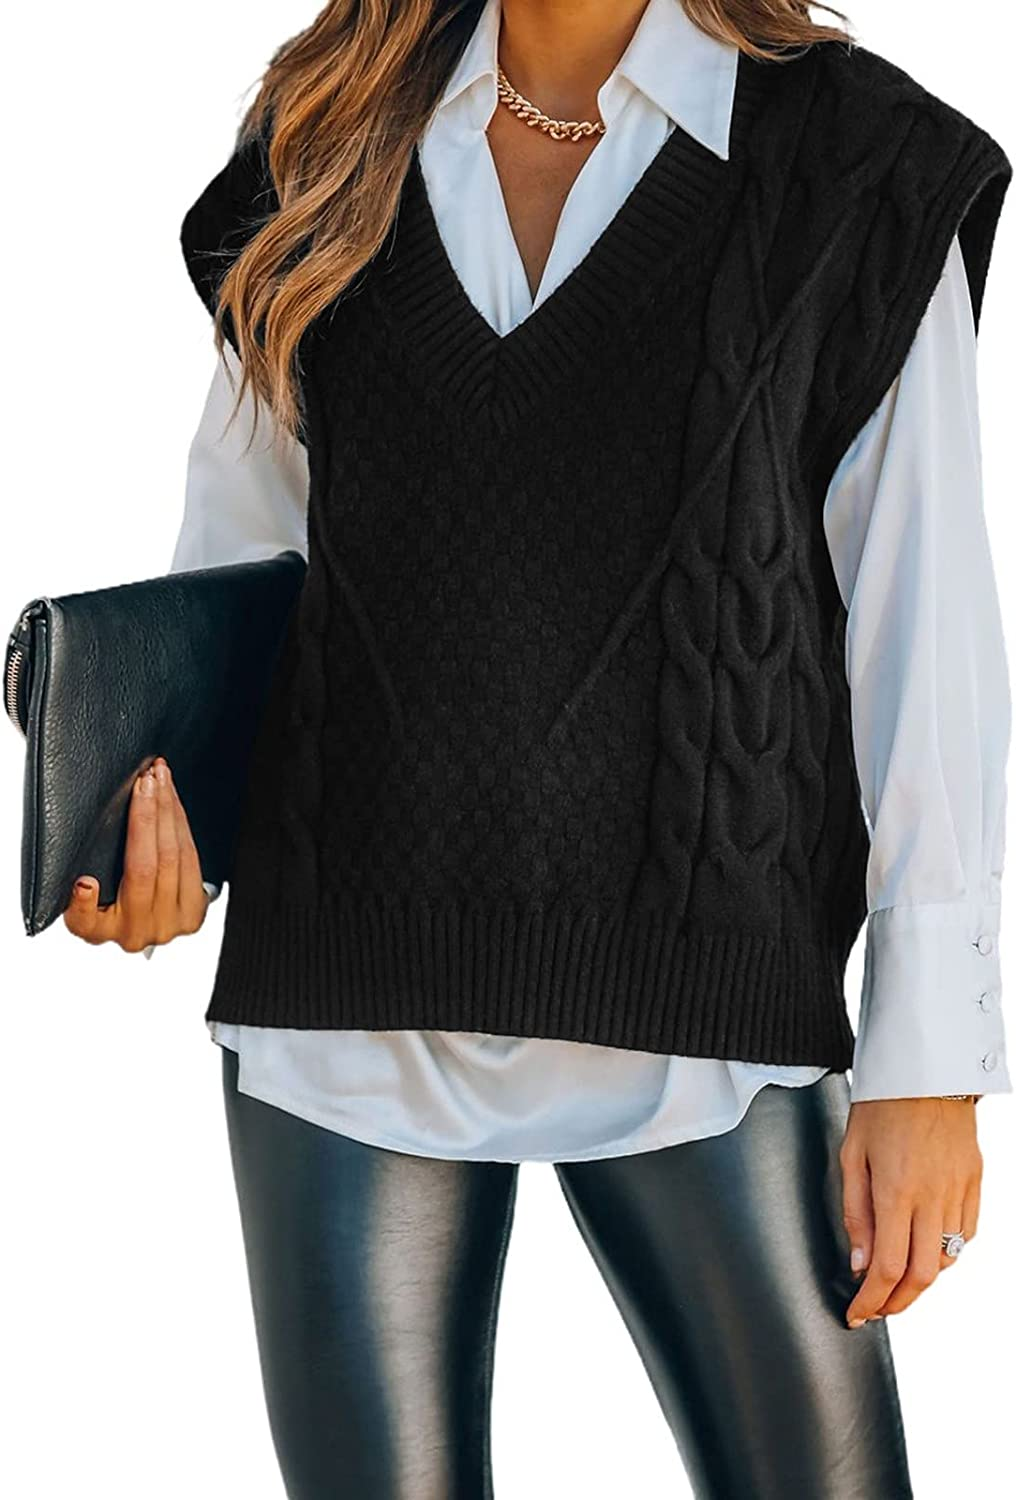 Uusollecy Women V Neck Sweater Vest, Sleeveless Knit Pullover, Elegant Winter Cable Kint Tops